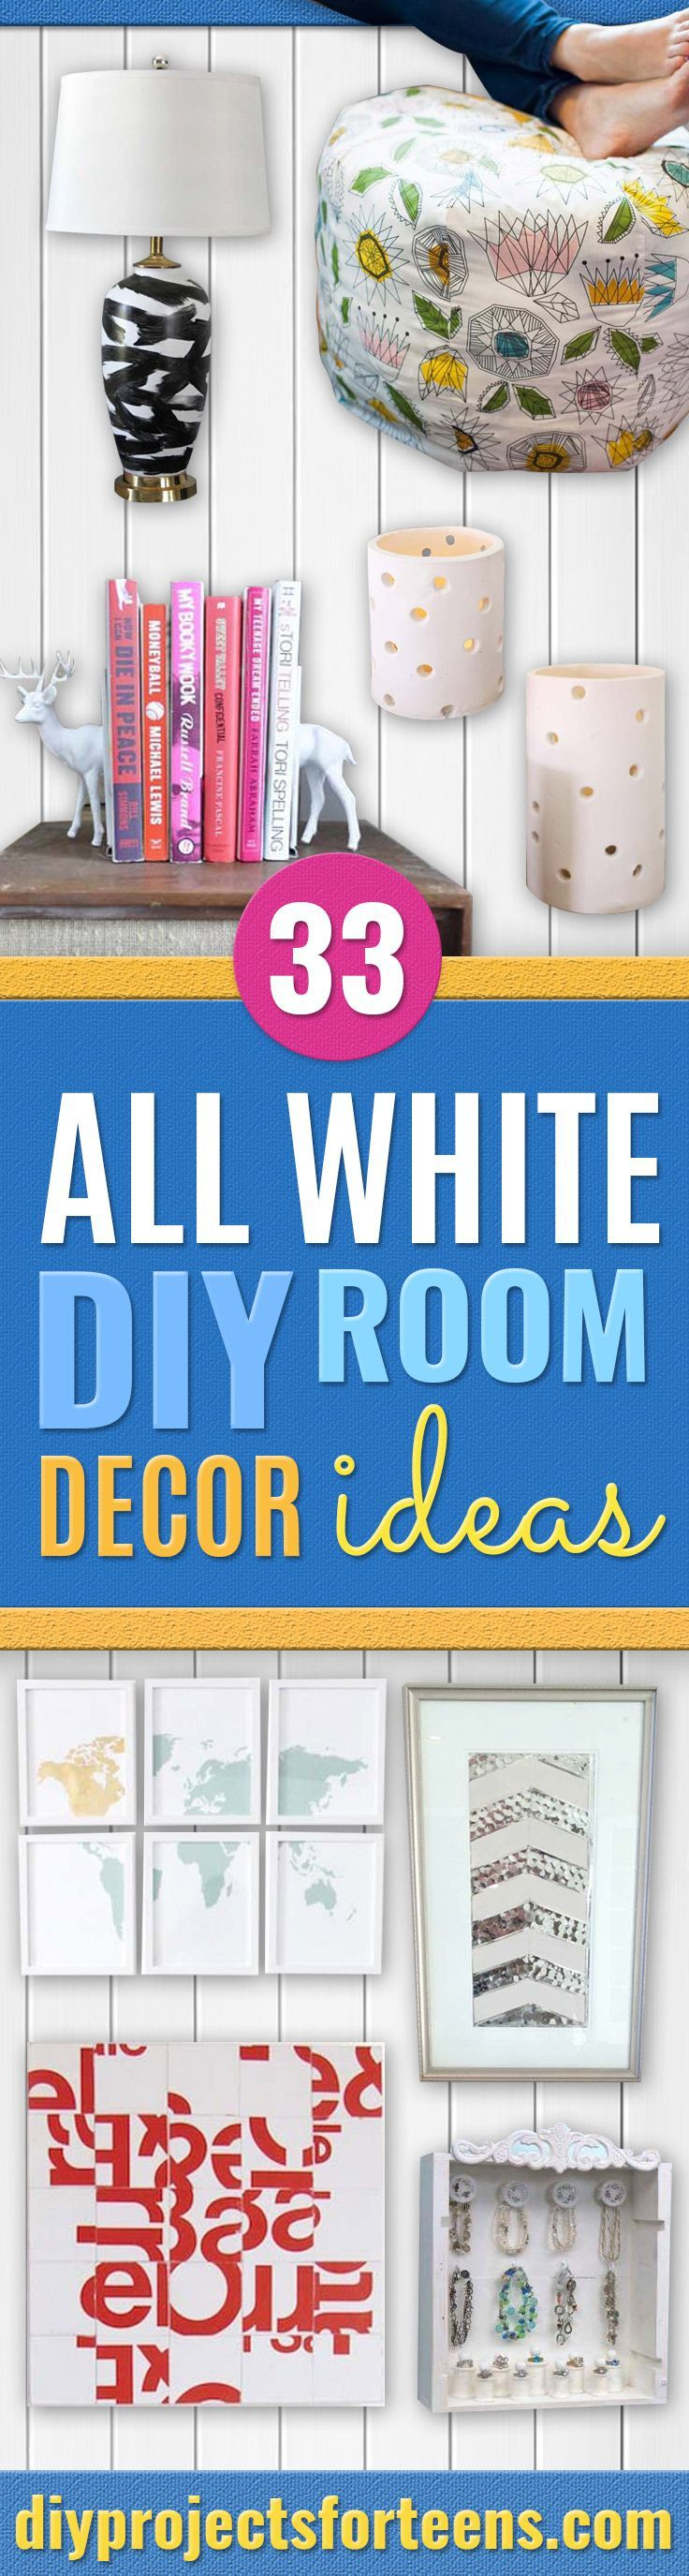 Cute diy room decor pinterest all white diy room decor  pinterest  diy room decor room decor